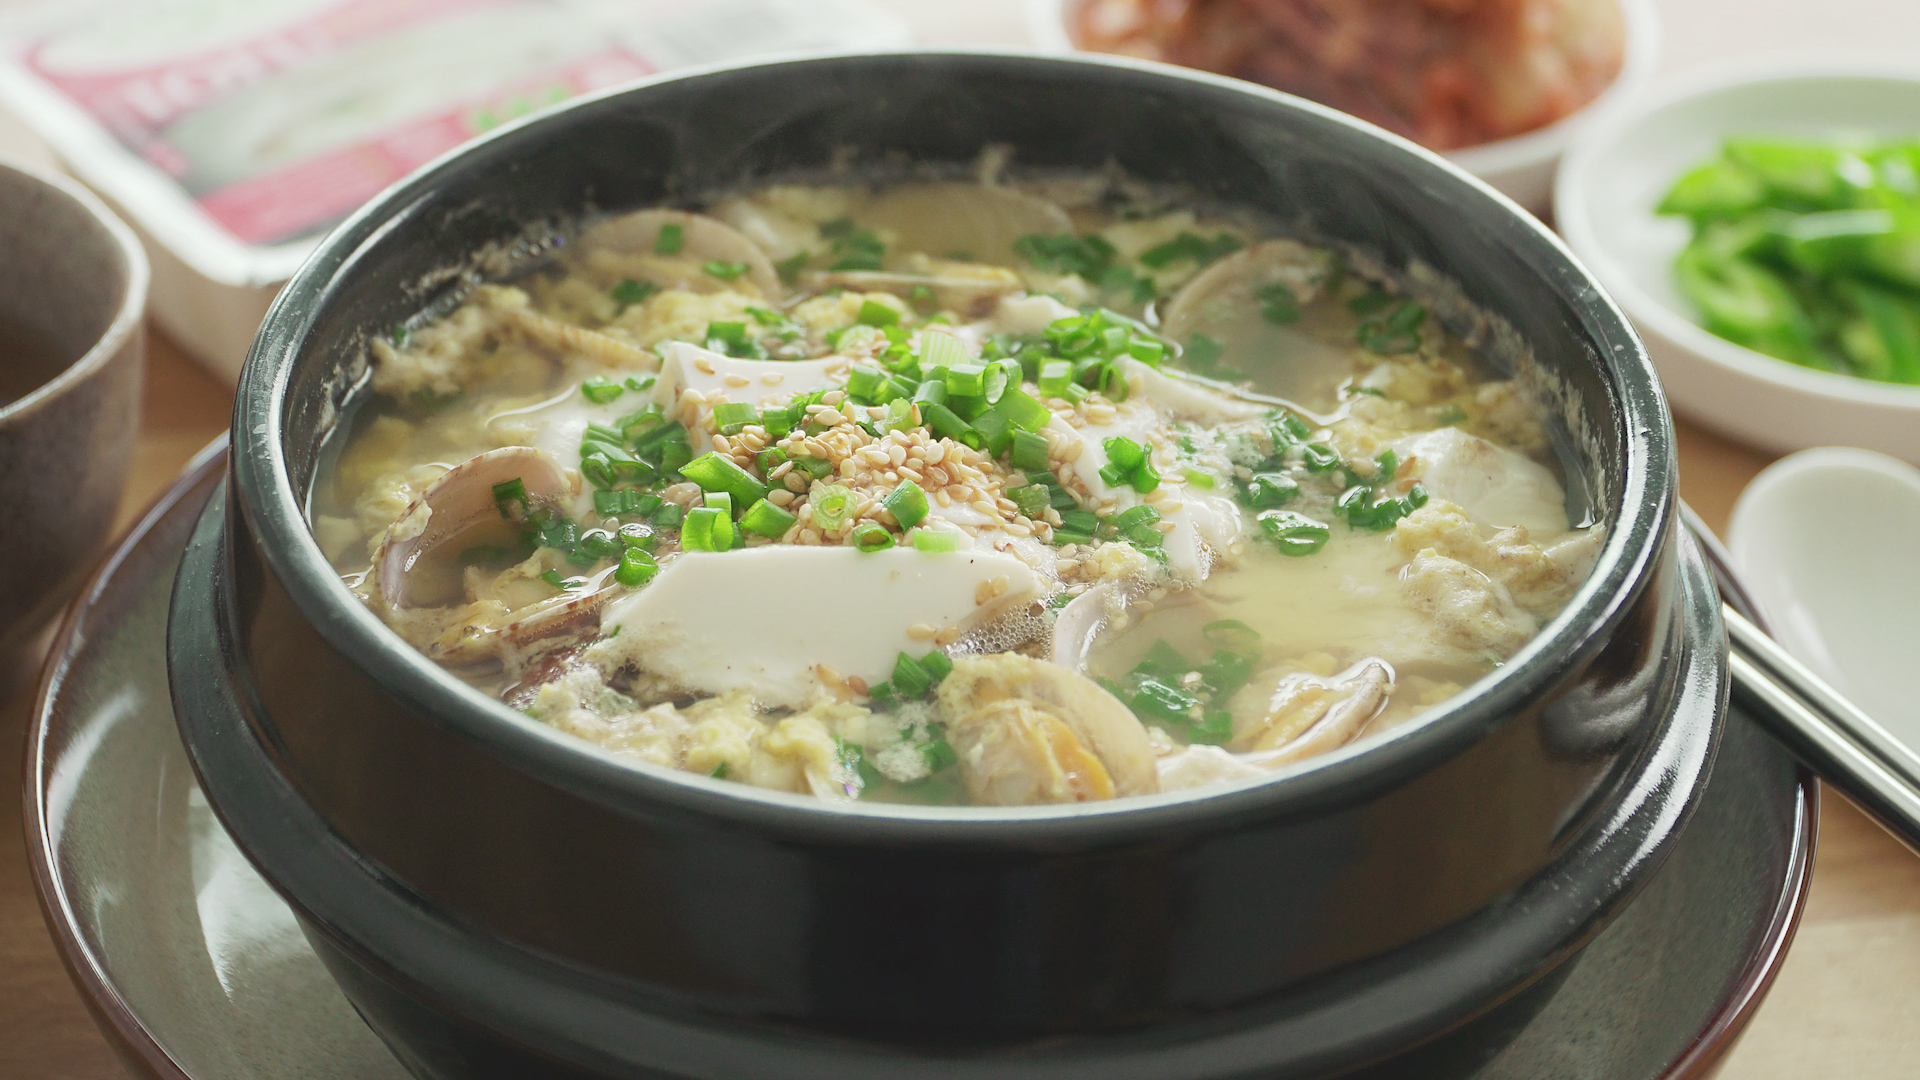 Tofu with Egg and Clams soup - 豆腐蛋花蛤蜊汤